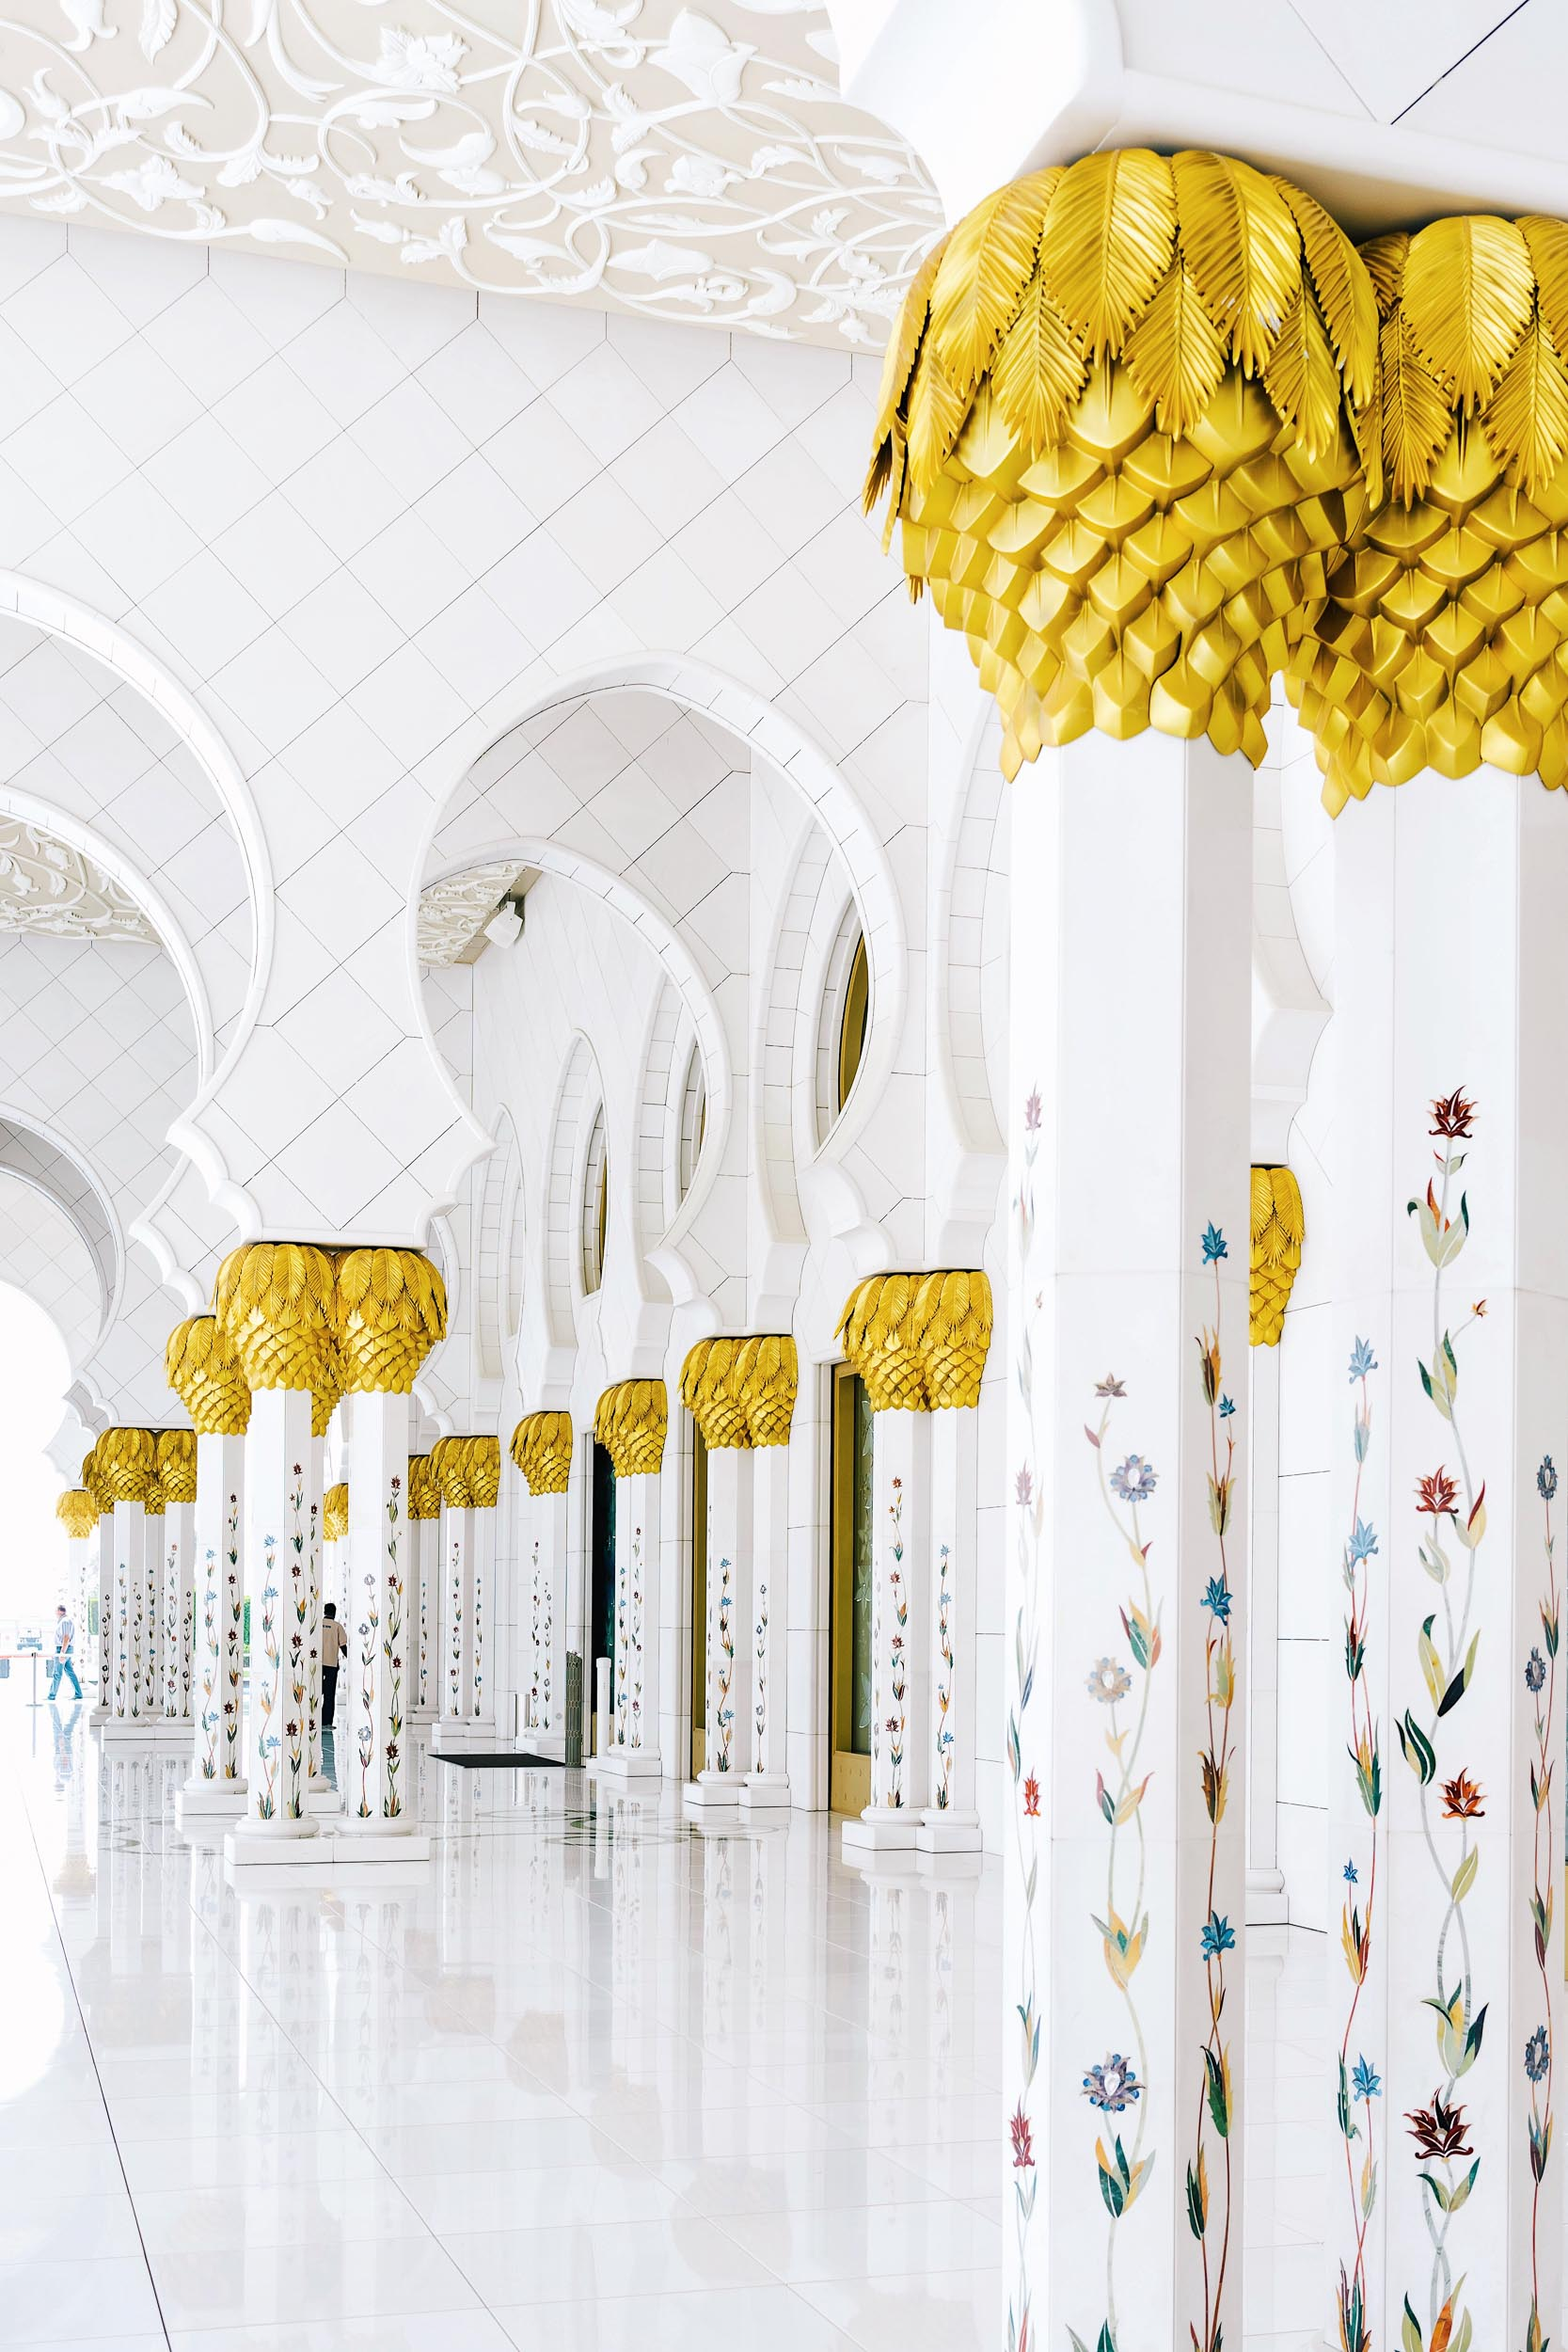 Inside the Sheikh Zayed Grand Mosque in Abu Dhabi